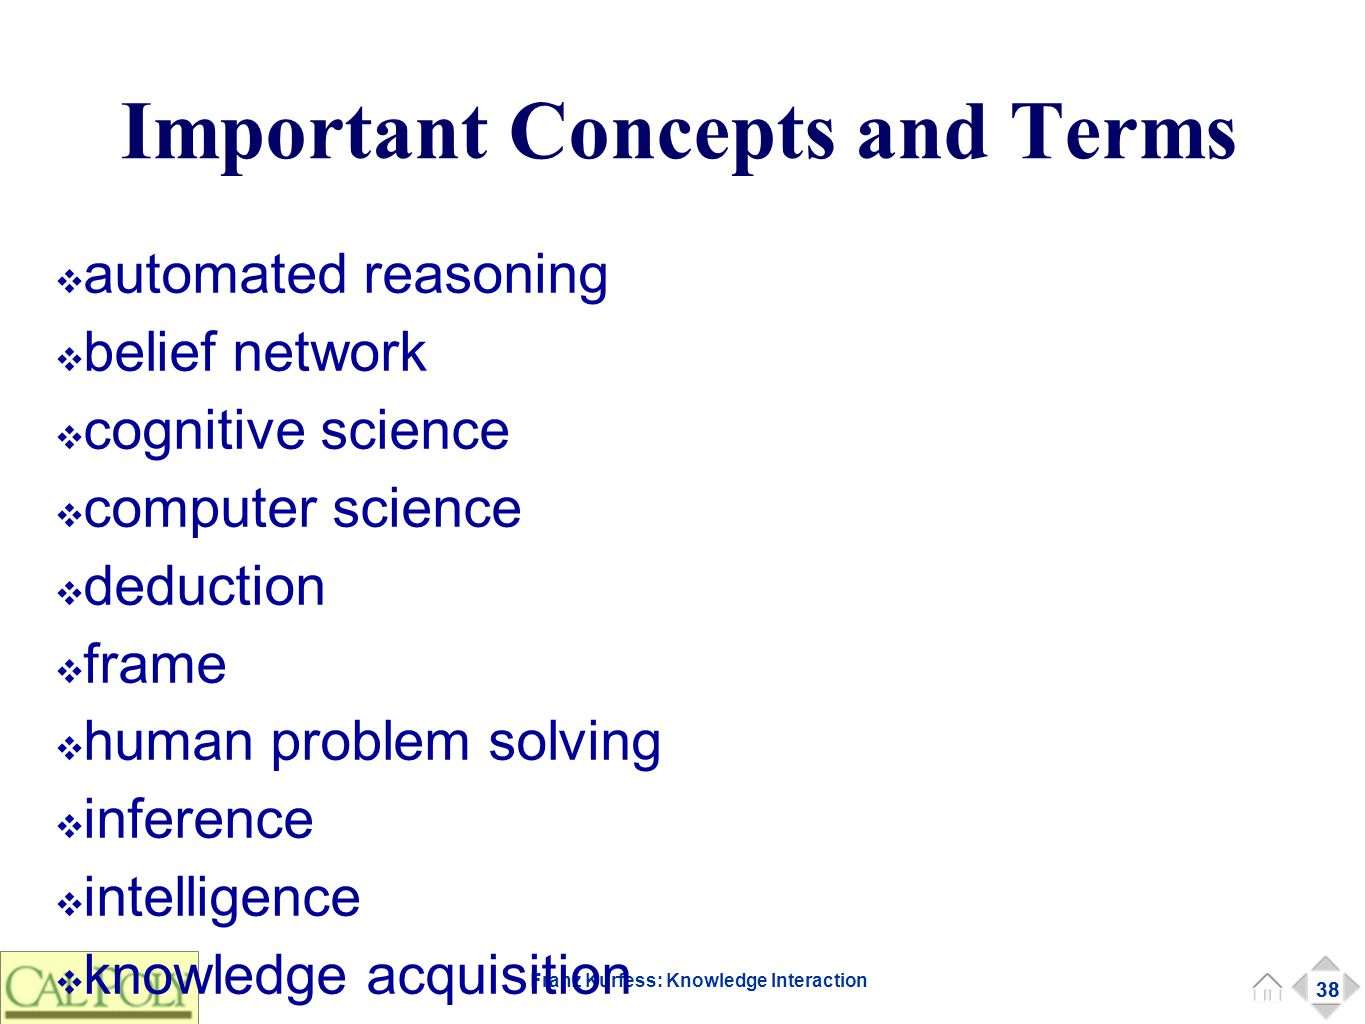 38 Franz Kurfess: Knowledge Interaction Important Concepts and Terms 38 ❖ automated reasoning ❖ belief network ❖ cognitive science ❖ computer science ❖ deduction ❖ frame ❖ human problem solving ❖ inference ❖ intelligence ❖ knowledge acquisition ❖ knowledge representation ❖ linguistics ❖ logic ❖ machine learning ❖ natural language ❖ ontology ❖ ontological commitment ❖ predicate logic ❖ probabilistic reasoning ❖ propositional logic ❖ psychology ❖ rational agent ❖ rationality ❖ reasoning ❖ rule-based system ❖ semantic network ❖ surrogate ❖ taxonomy ❖ Turing machine